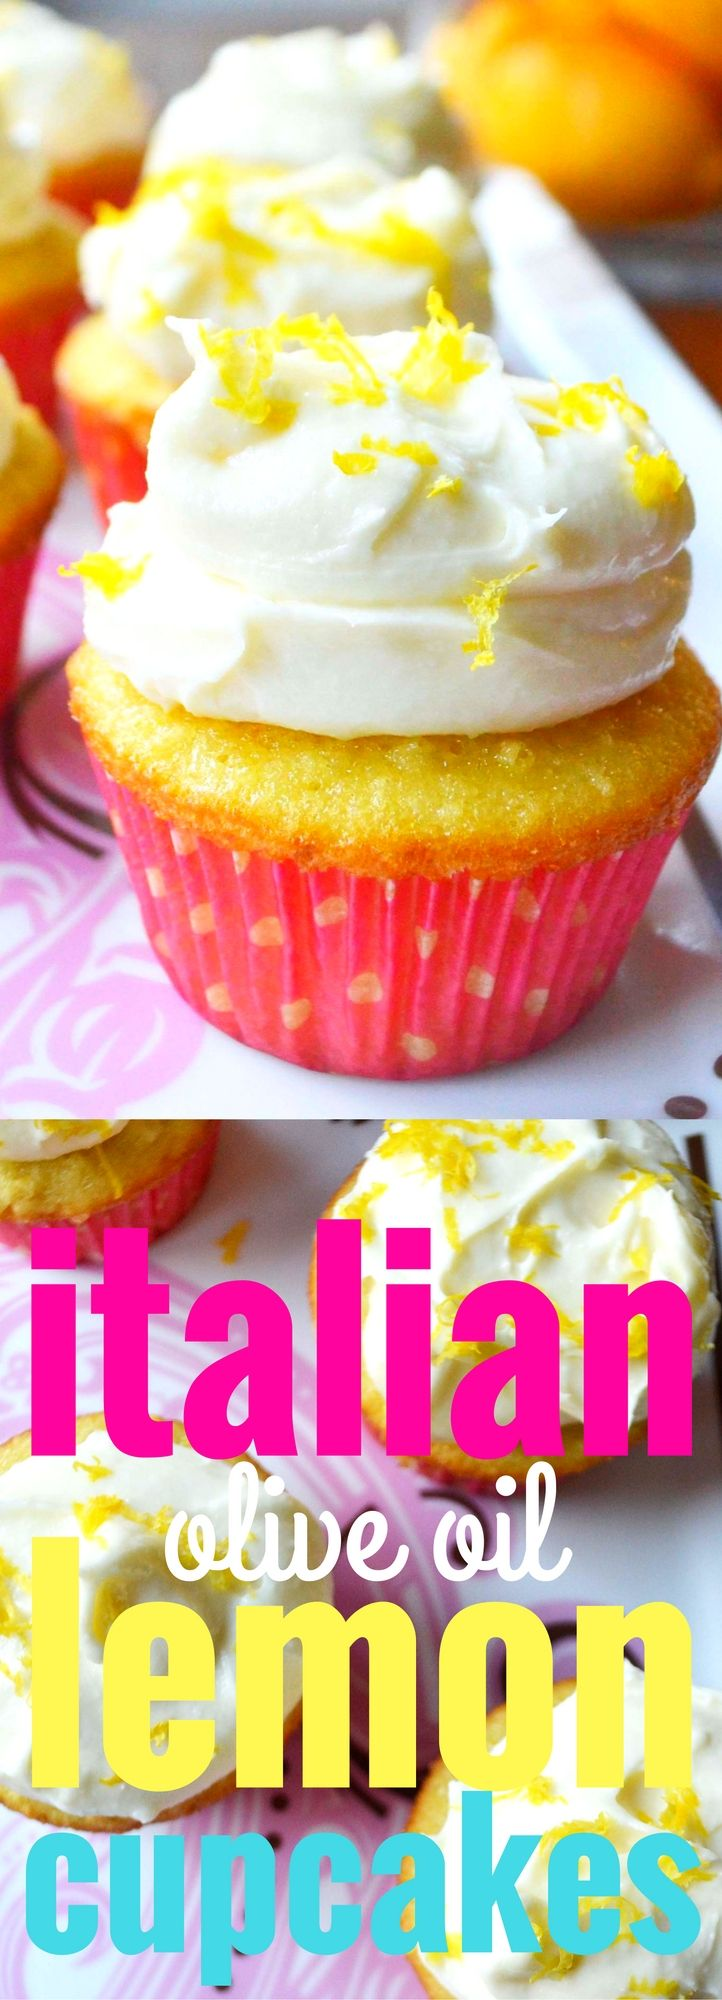 Italian Lemon Olive Oil Cupcakes with Sweet Cream Cheese and Ricotta Frosting. Fresh lemon zest, lemon juice, and olive oil makes this cupcakes extra moist and flavorful. The frosting is out of this world! www.modernhoney.com